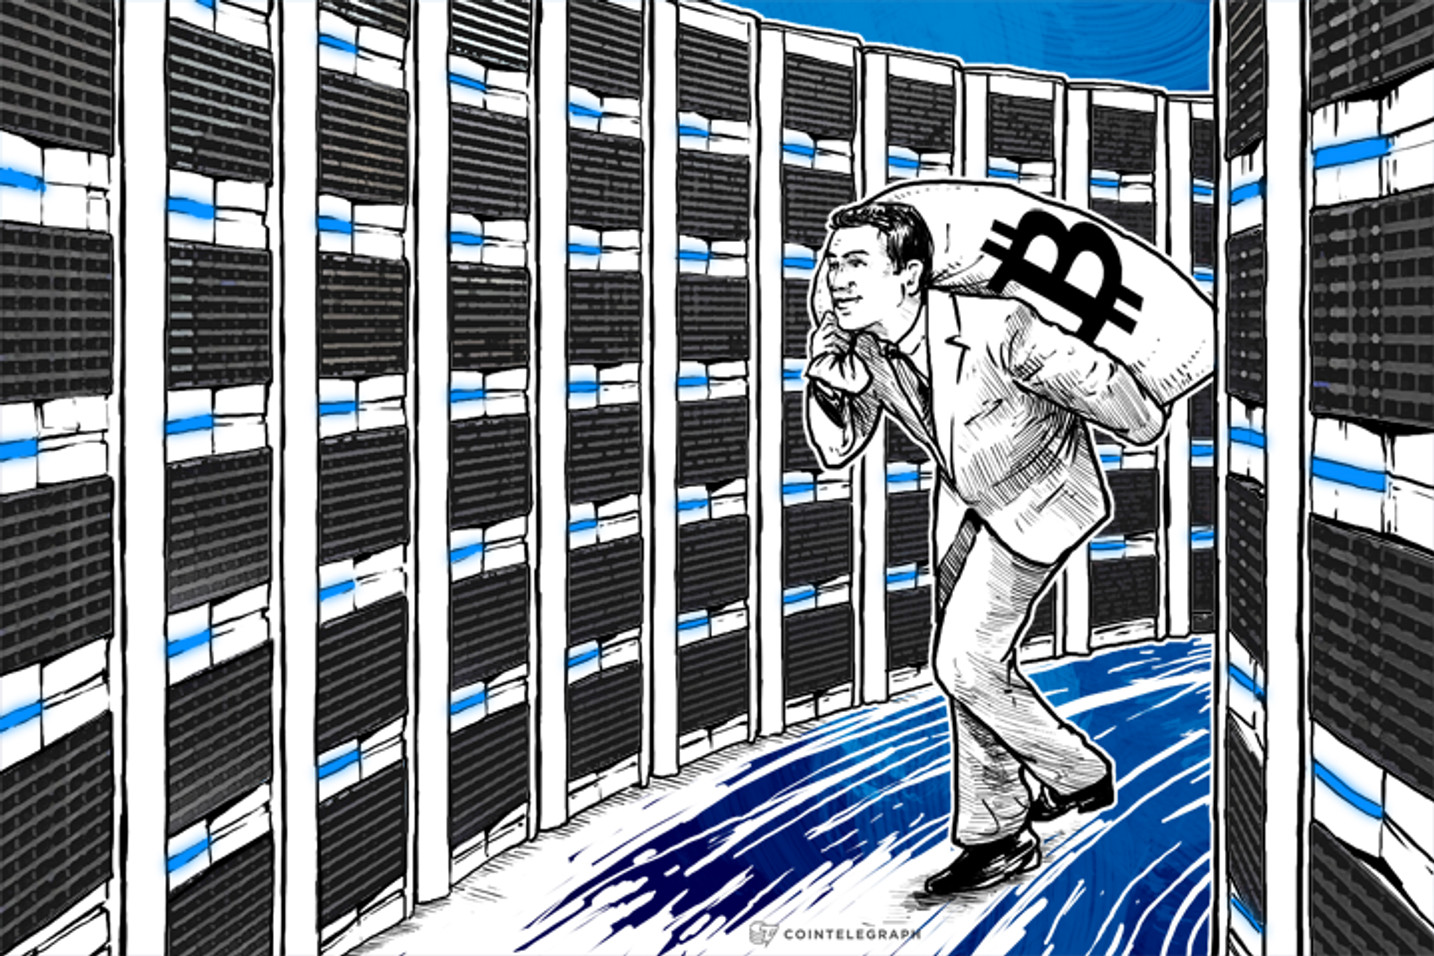 German 'Bitcoin Brothers' Unveils Bitcoin Mining Supercomputers